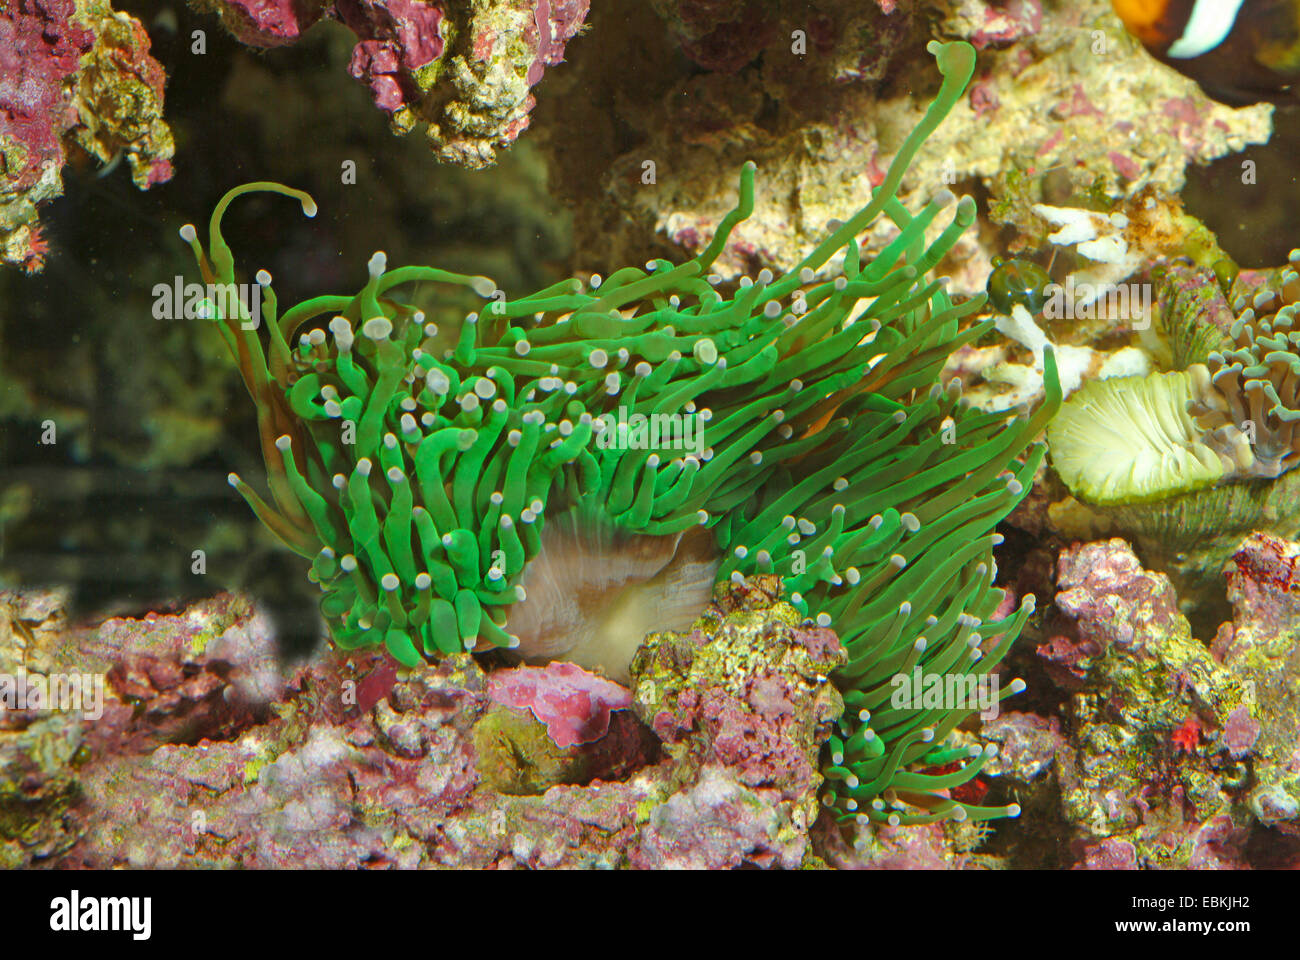 Corail Euphyllia glabrescens (flamme), side view Photo Stock